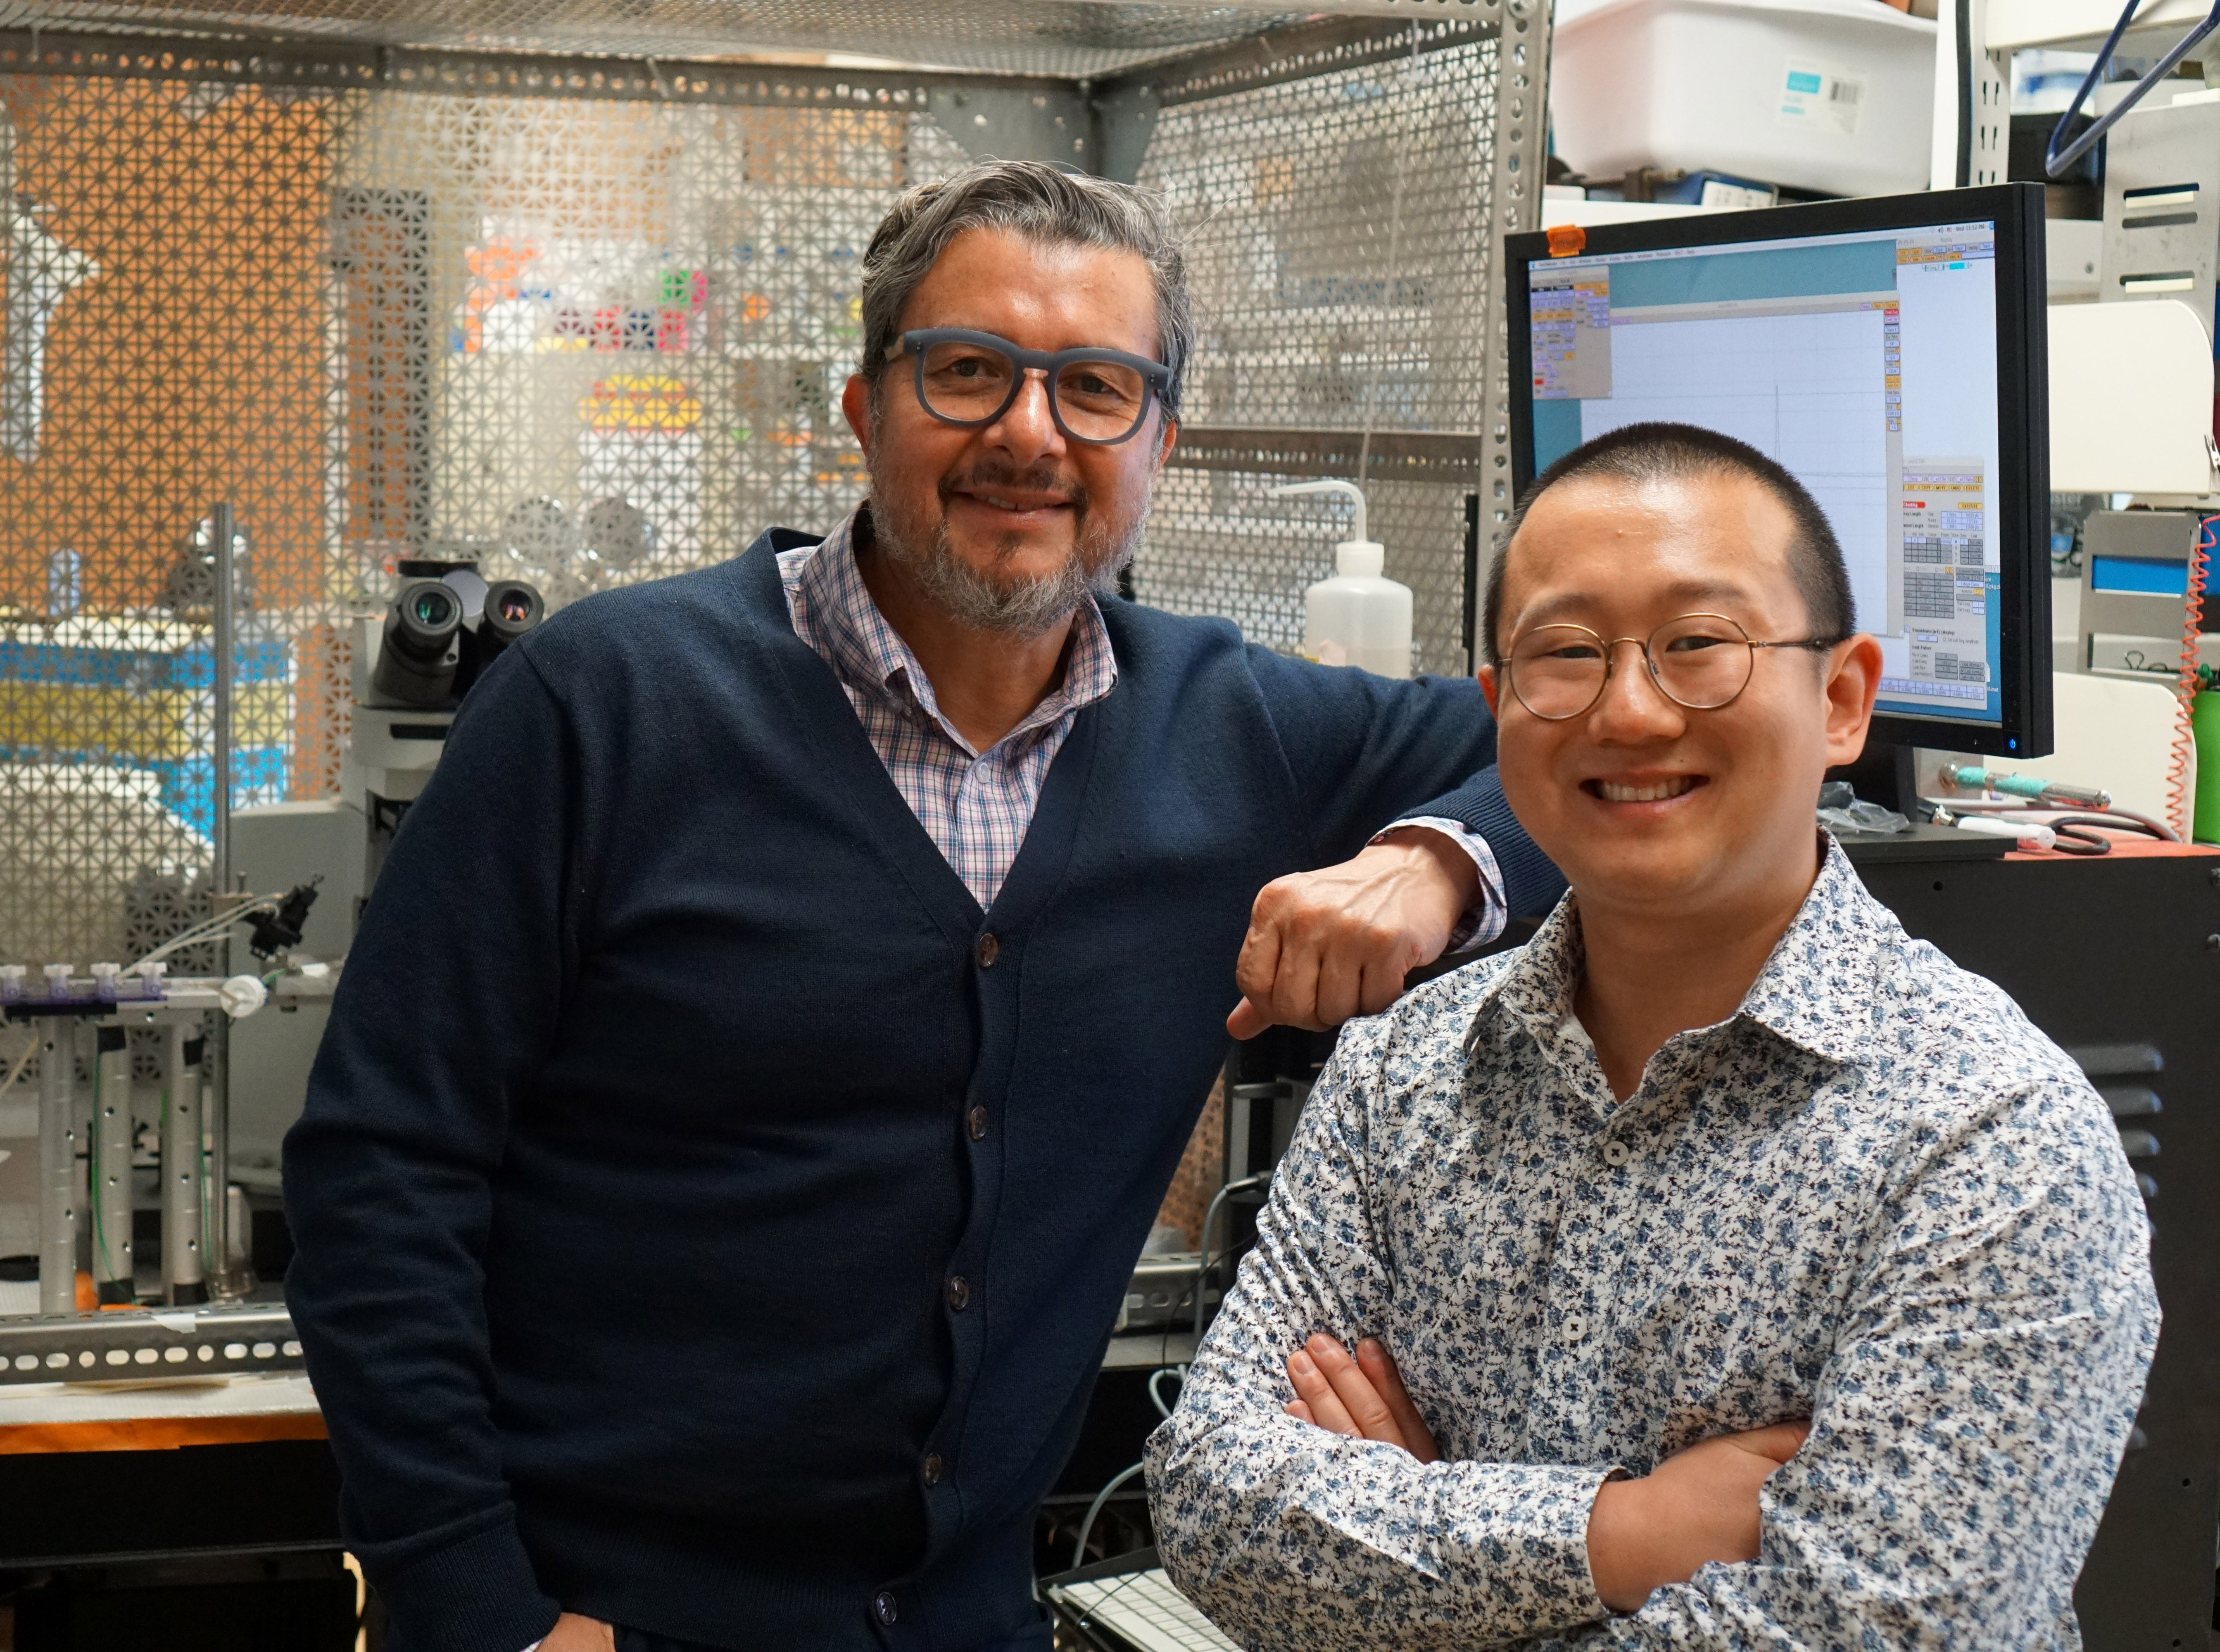 Associate Professor, Ricardo Araneda, PhD, Department of Biology, University of Maryland, College Park, MD, and PhD Candidate, Ruilong Hu, Neuroscience & Cognitive Sciences Program, University of Maryland, College Park, MD.